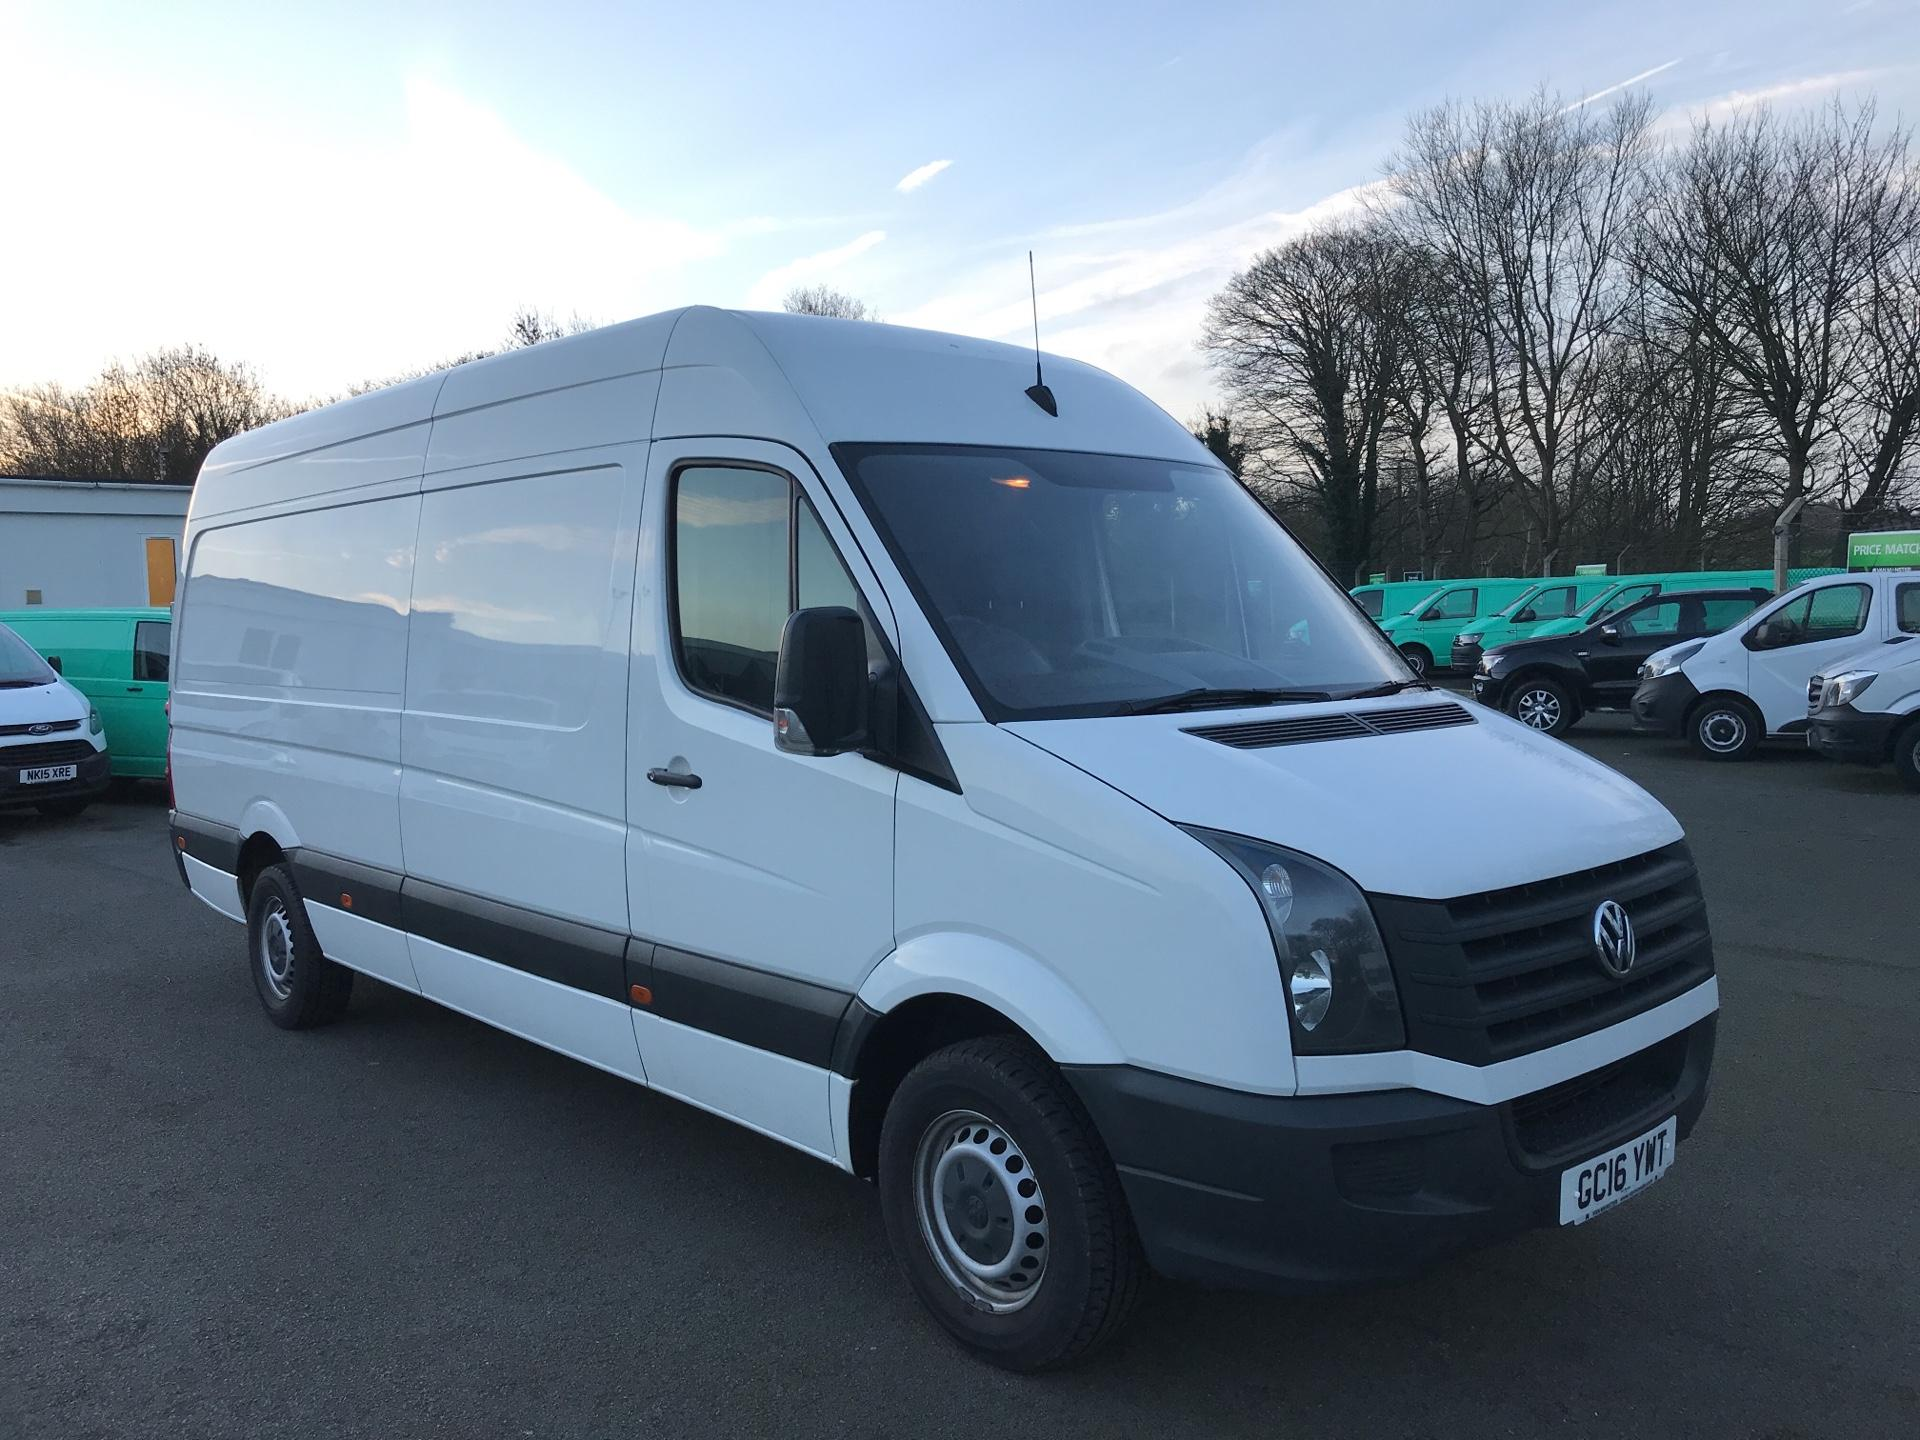 2016 Volkswagen Crafter  CR35 LWB 2.0 TDI 136PS HIGH ROOF EURO 5 *VALUE RANGE VEHICLE - CONDITION REFLECTED IN PRICE* (GC16YWT)